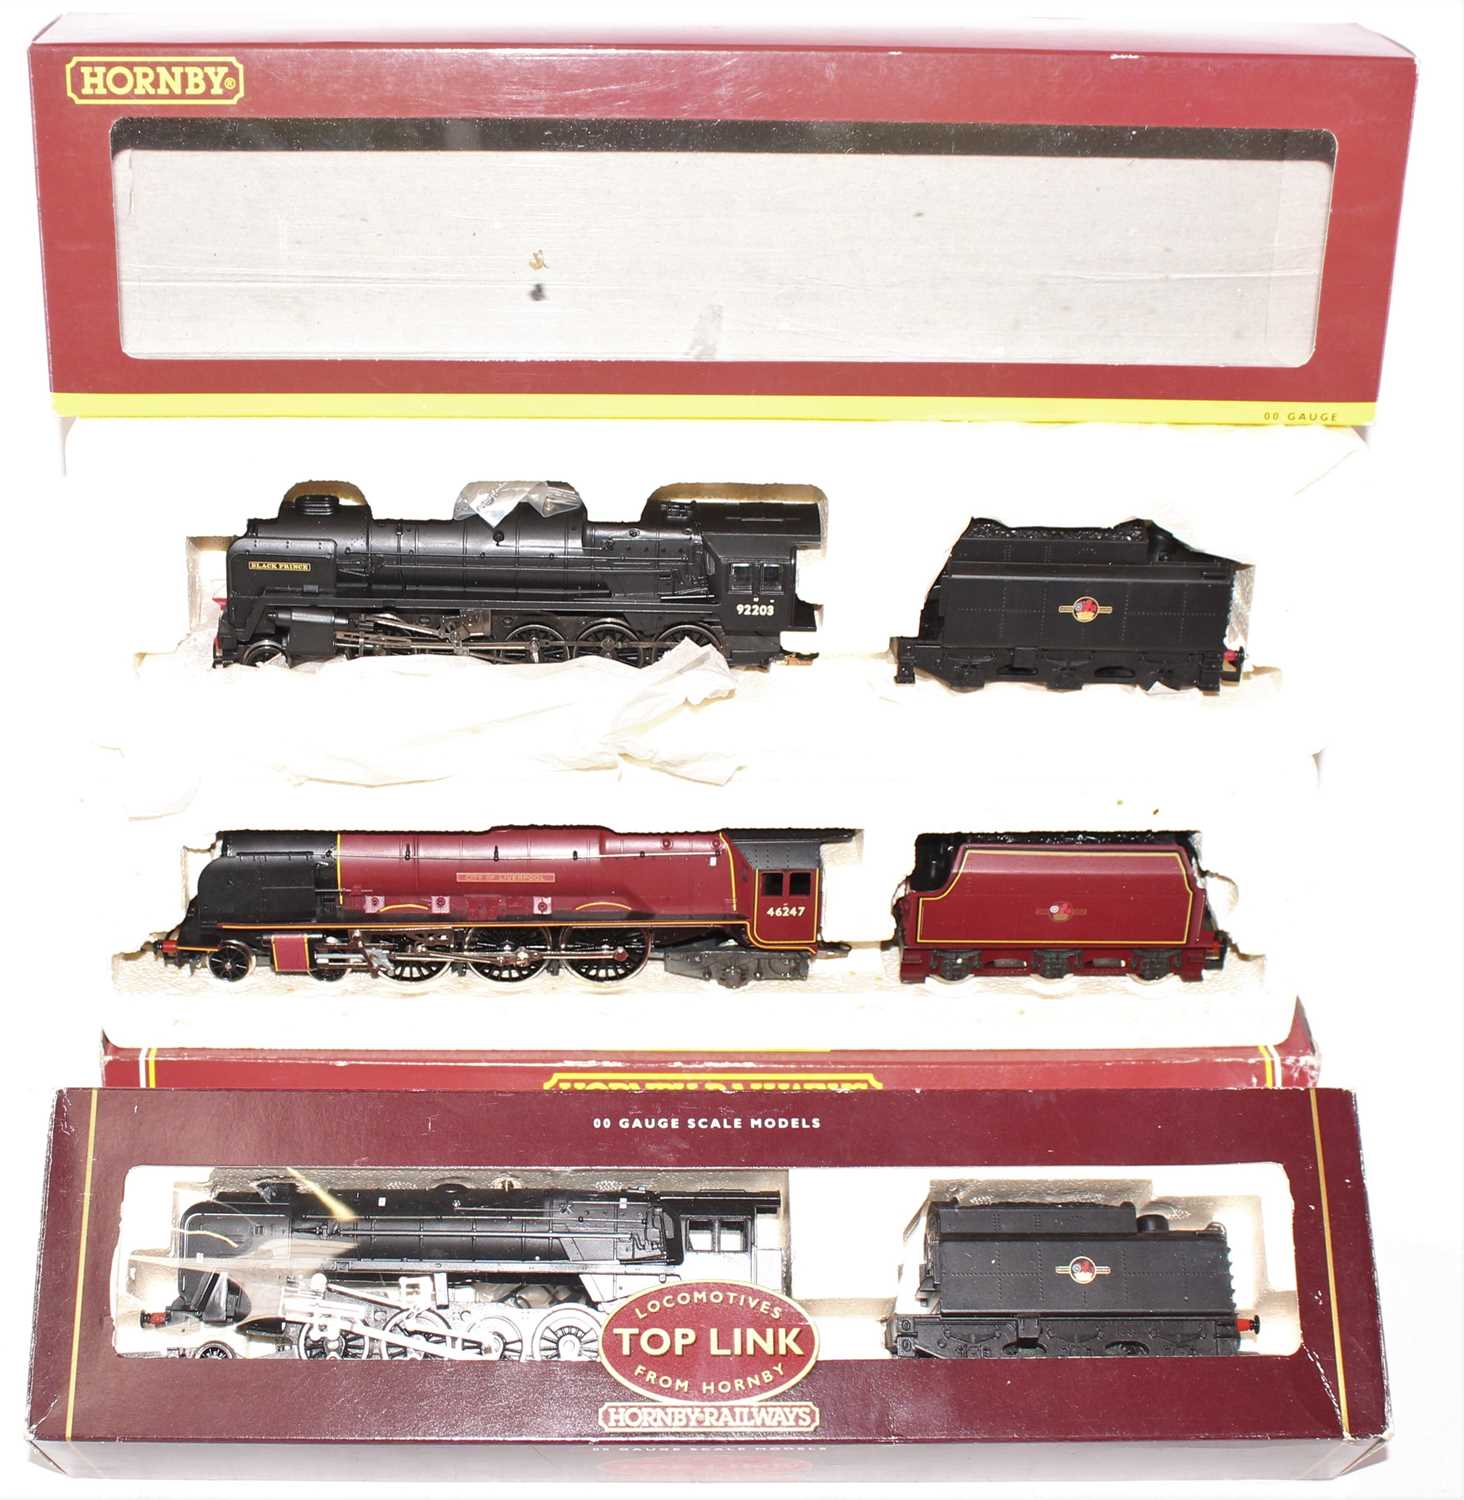 A Hornby Railways 00 gauge BR locomotive boxed group, to include a No. R2016 BR class 9F locomotive,